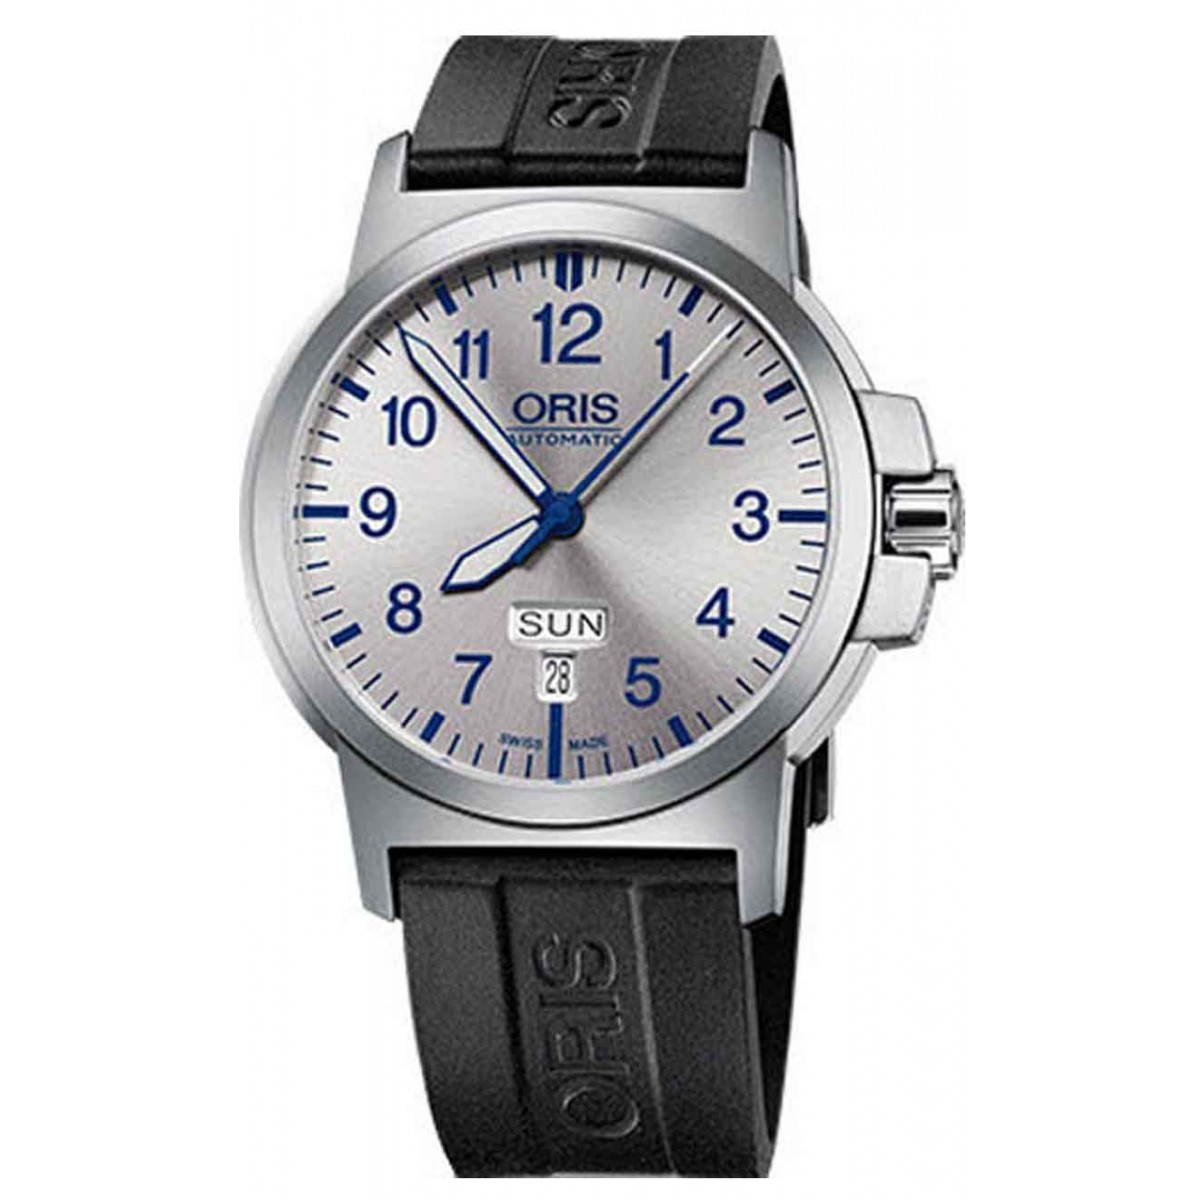 ORIS BC3 ADVANCED, DAY DATE - 100 M ∅42 mm, Automatico, Esfera plata, Caucho